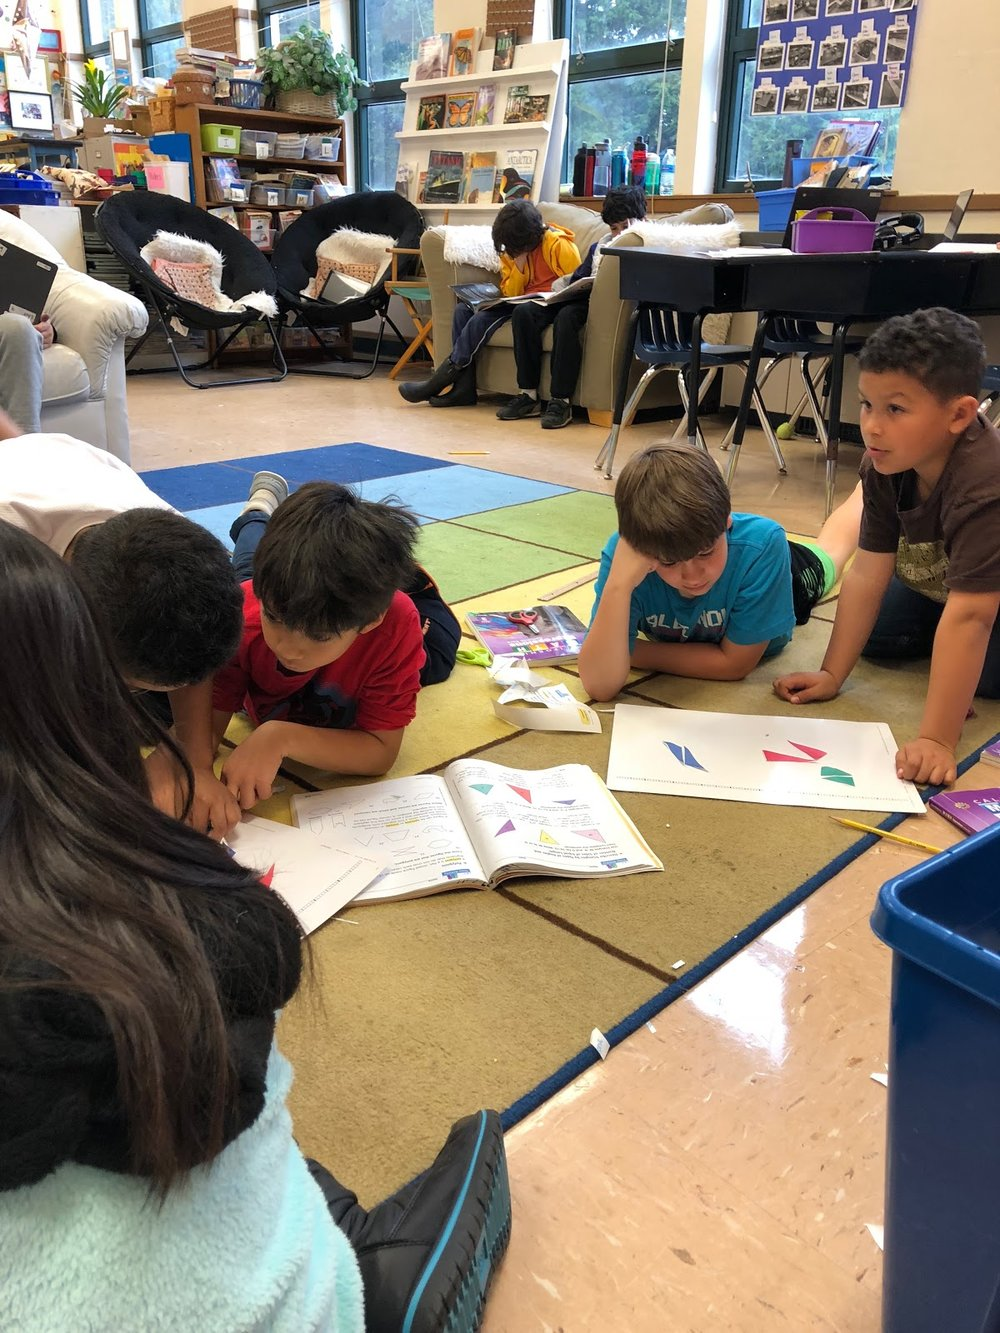 Students figuring it out together in the classroom.